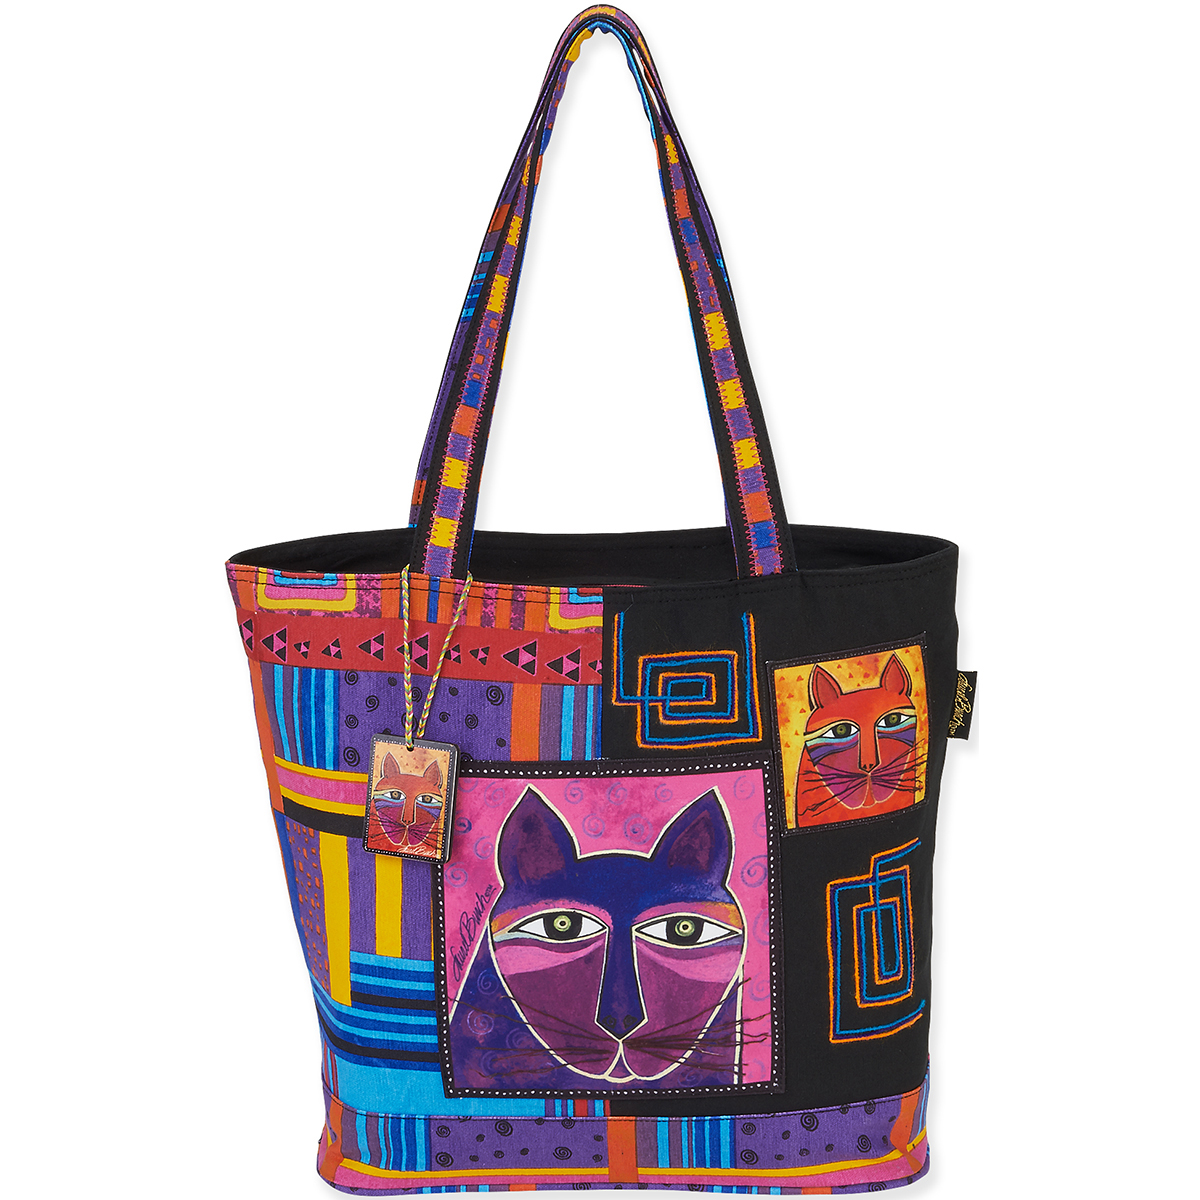 Laurel Burch Tote- Shoulder Tote 16\u0022X5\u0022X14\u0022 Whiskered Cats